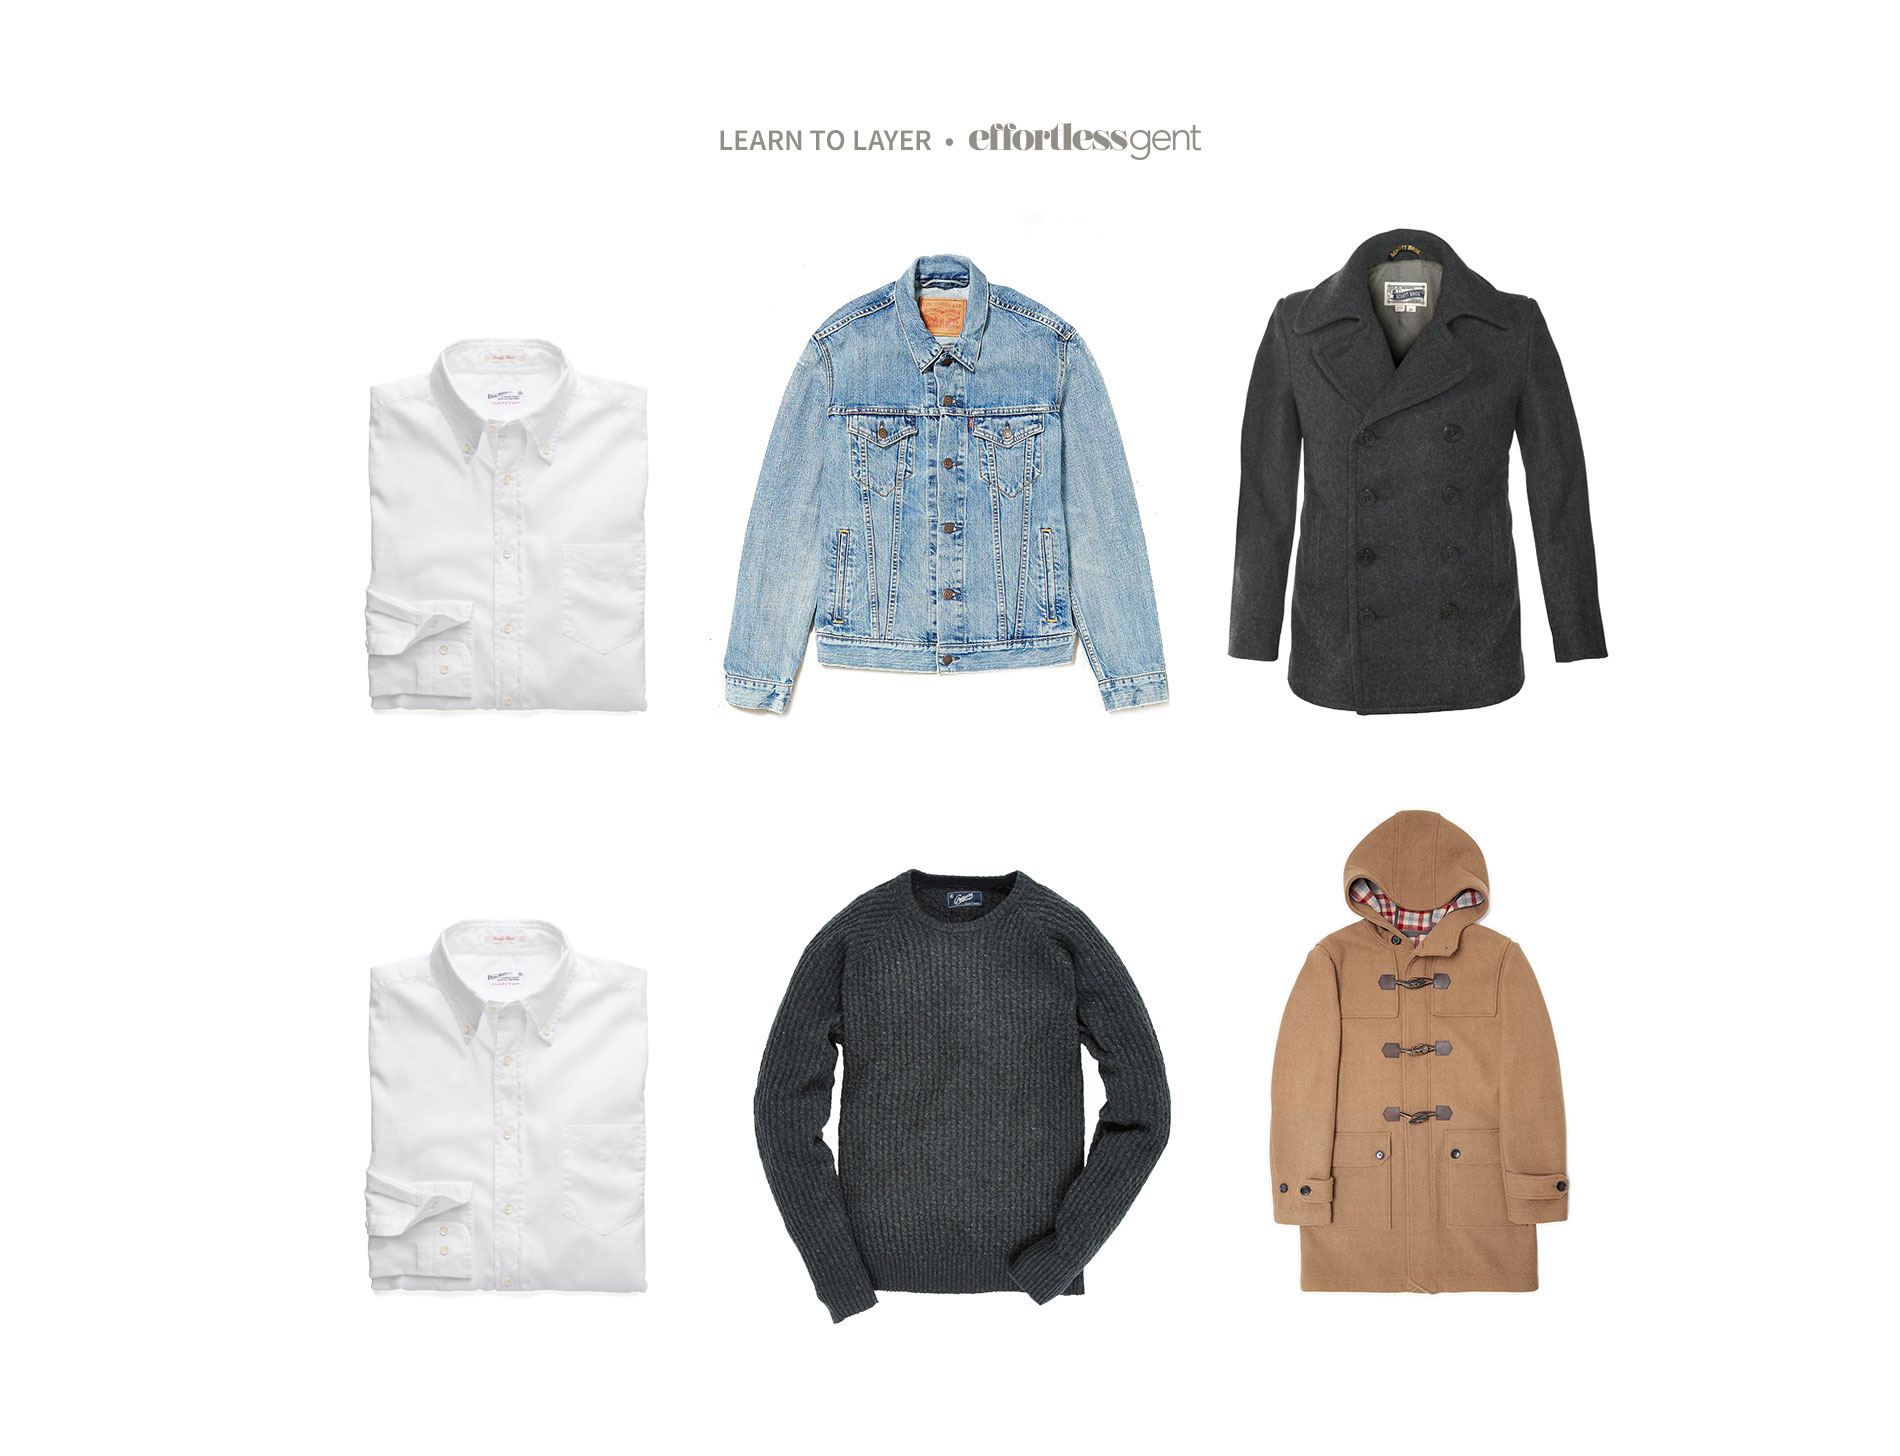 Beat The Freeze: Use These Layering Tips To Keep Out The Cold